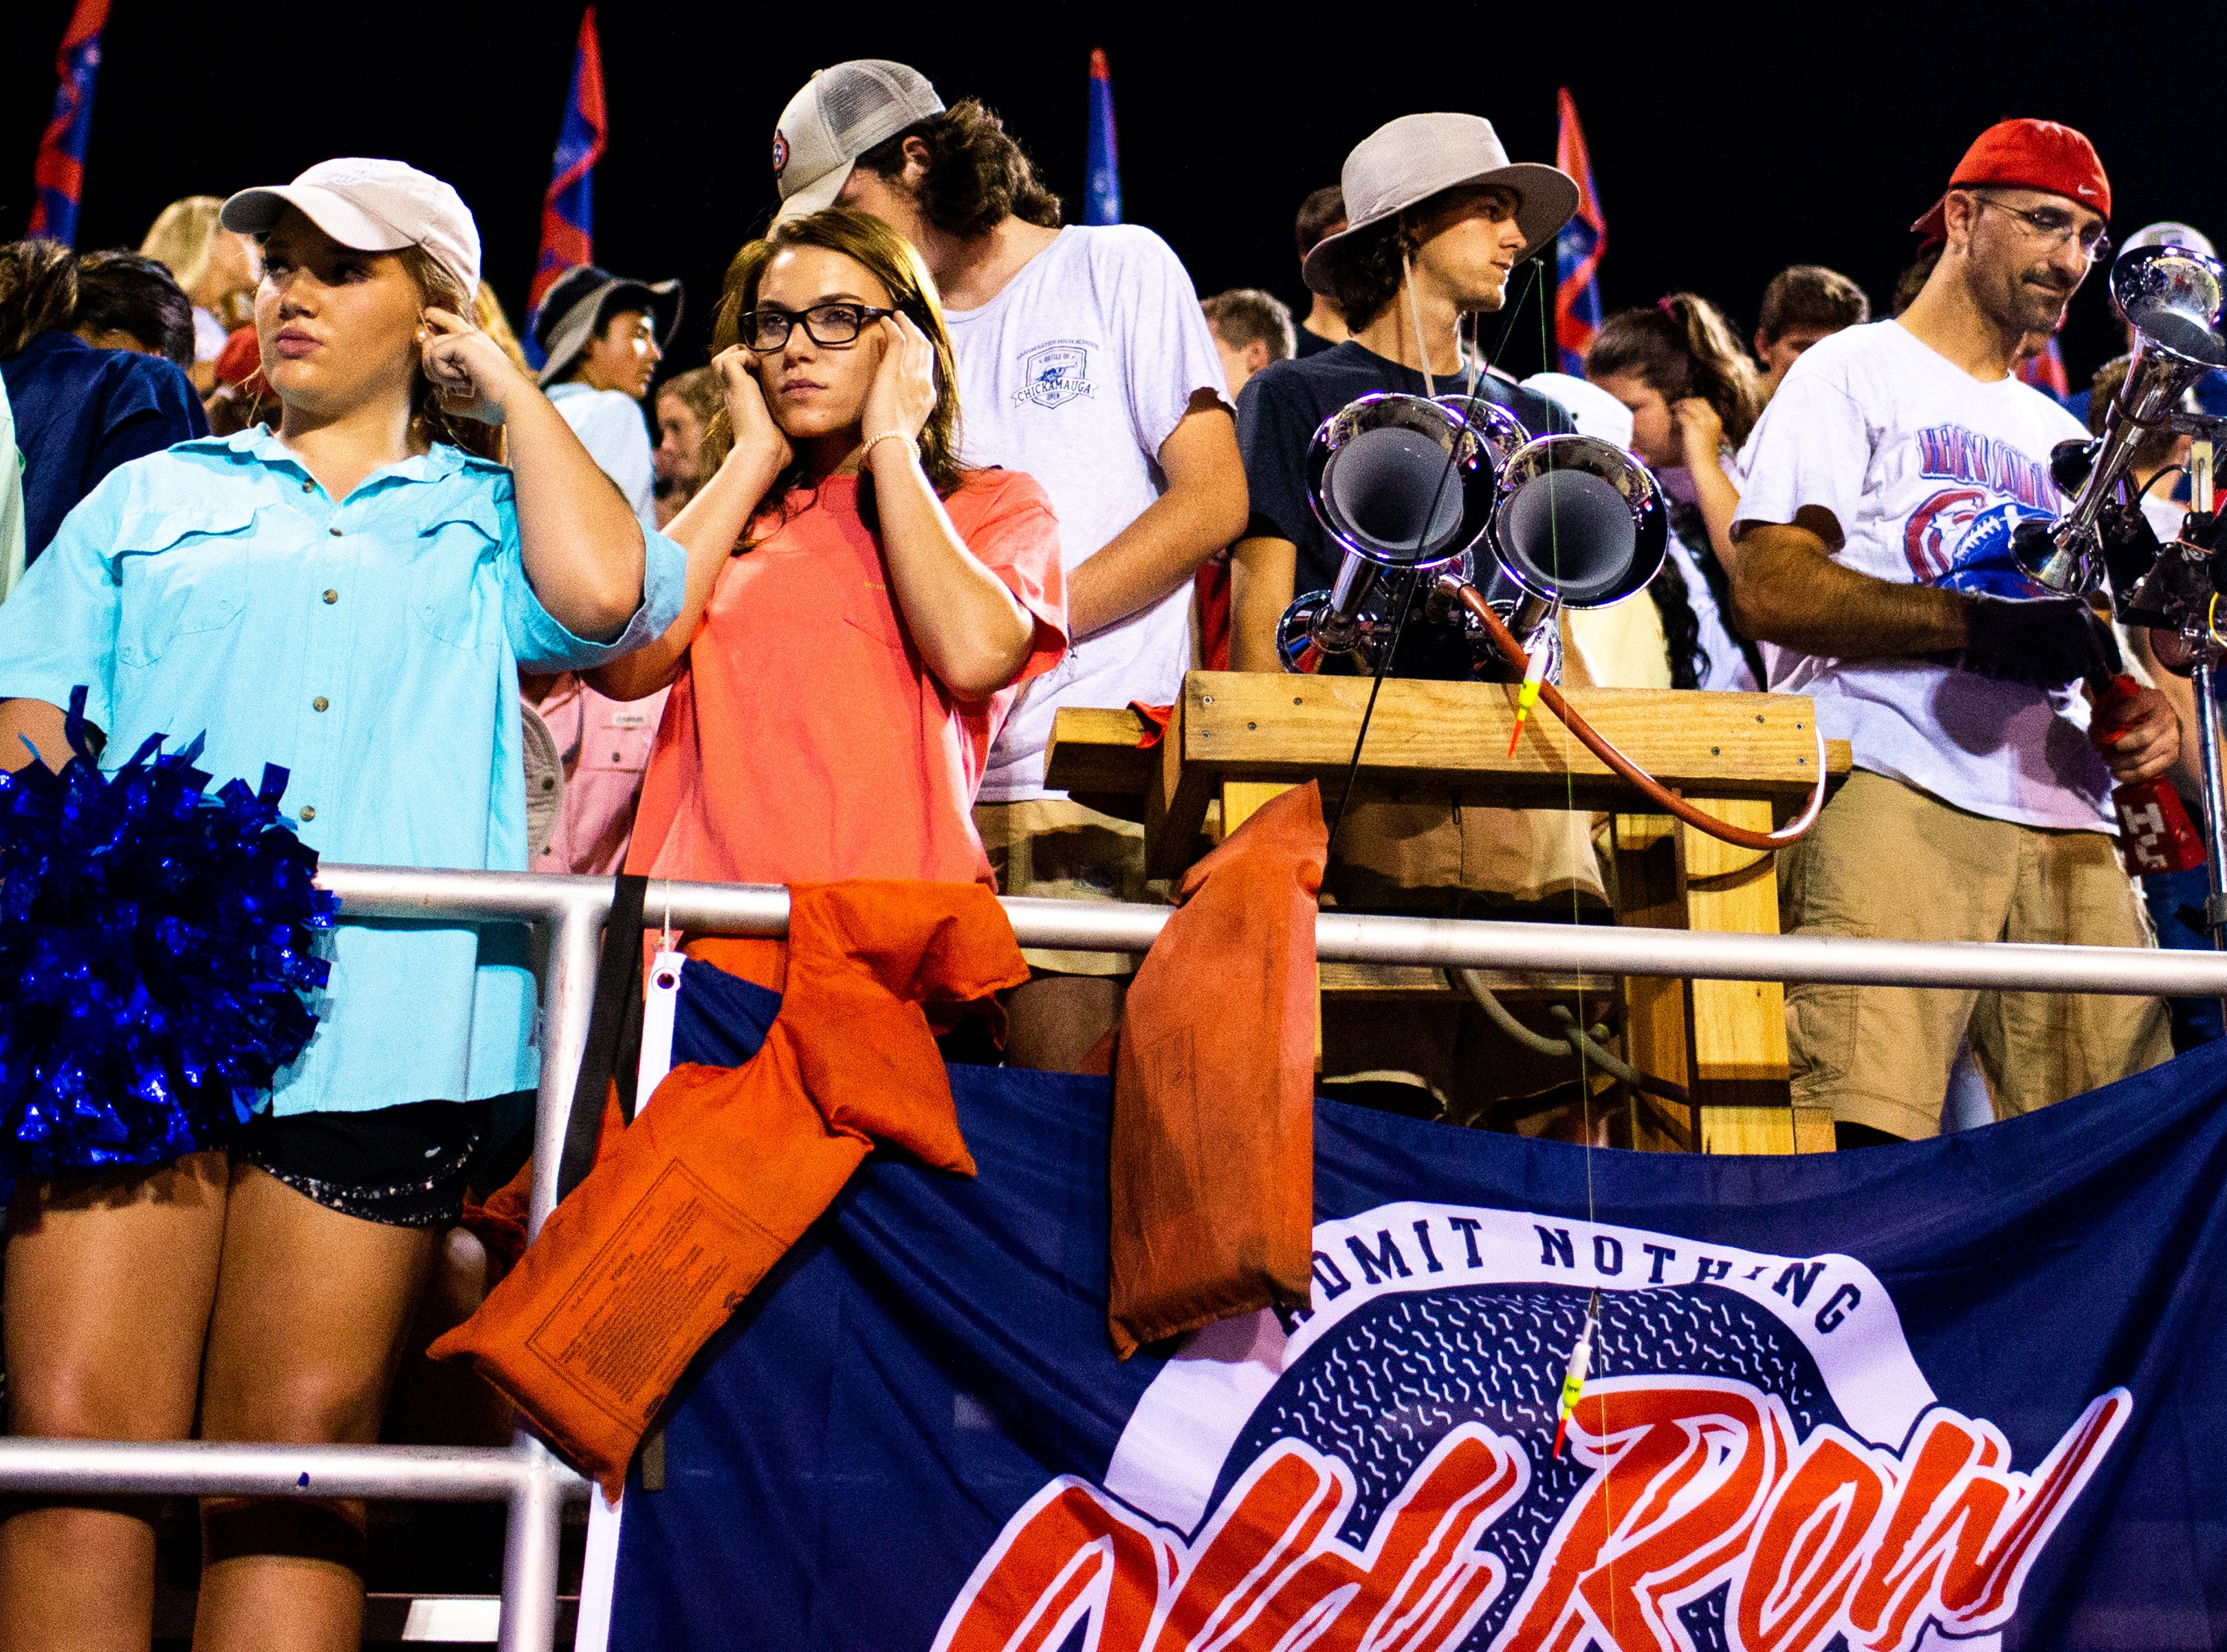 Henry County students plug their ears as they set off the alarm during the first half at Henry County Friday, Sept. 14, 2018, in Paris, Tenn.